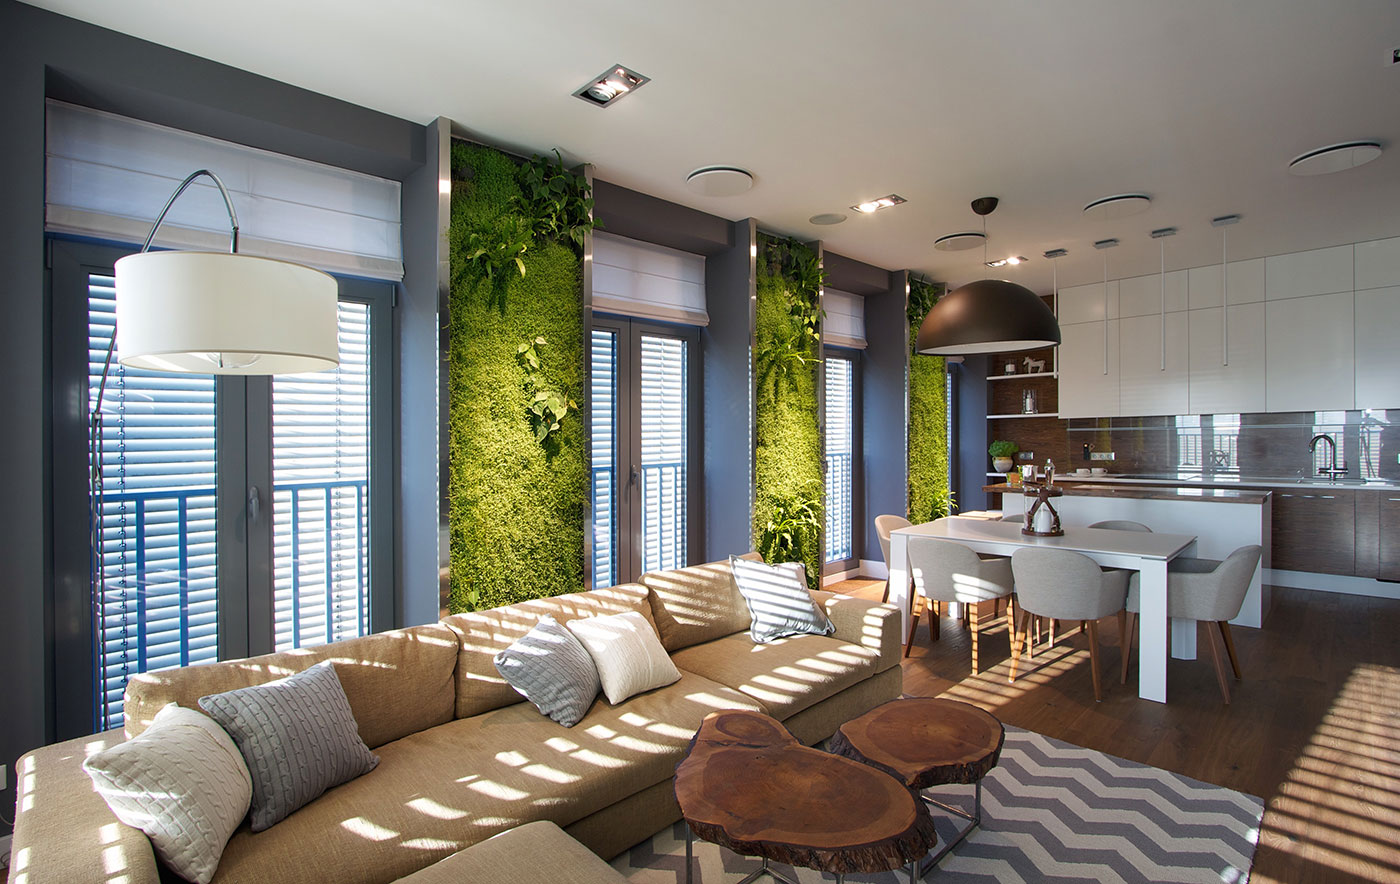 apartment inside. Stylish Contemporary Apartment With Interior Greenery Vertical Gardening Creates An Oasis Inside